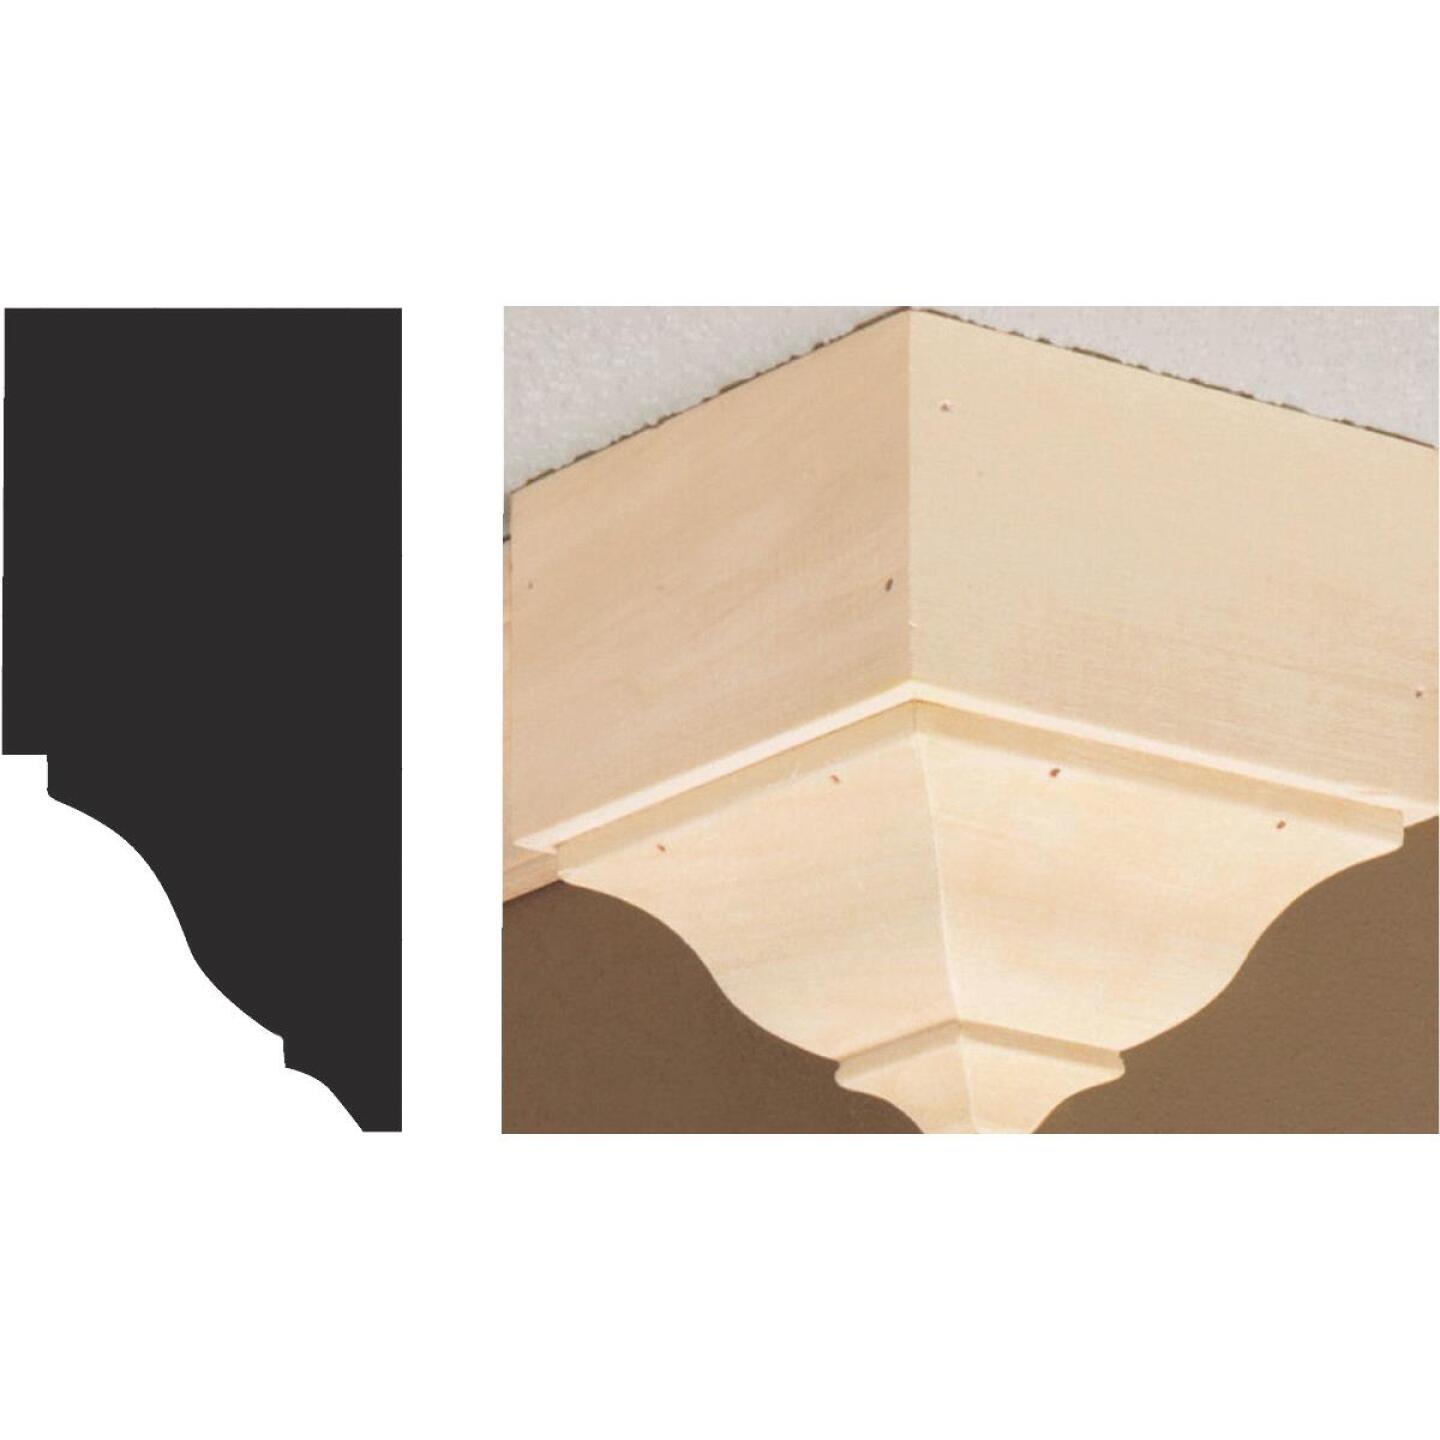 House of Fara 4-3/8 In. x 4-1/4 In. x 4-1/4 In. Unfinished Hardwood Outside Corner Molding Blocks Image 1